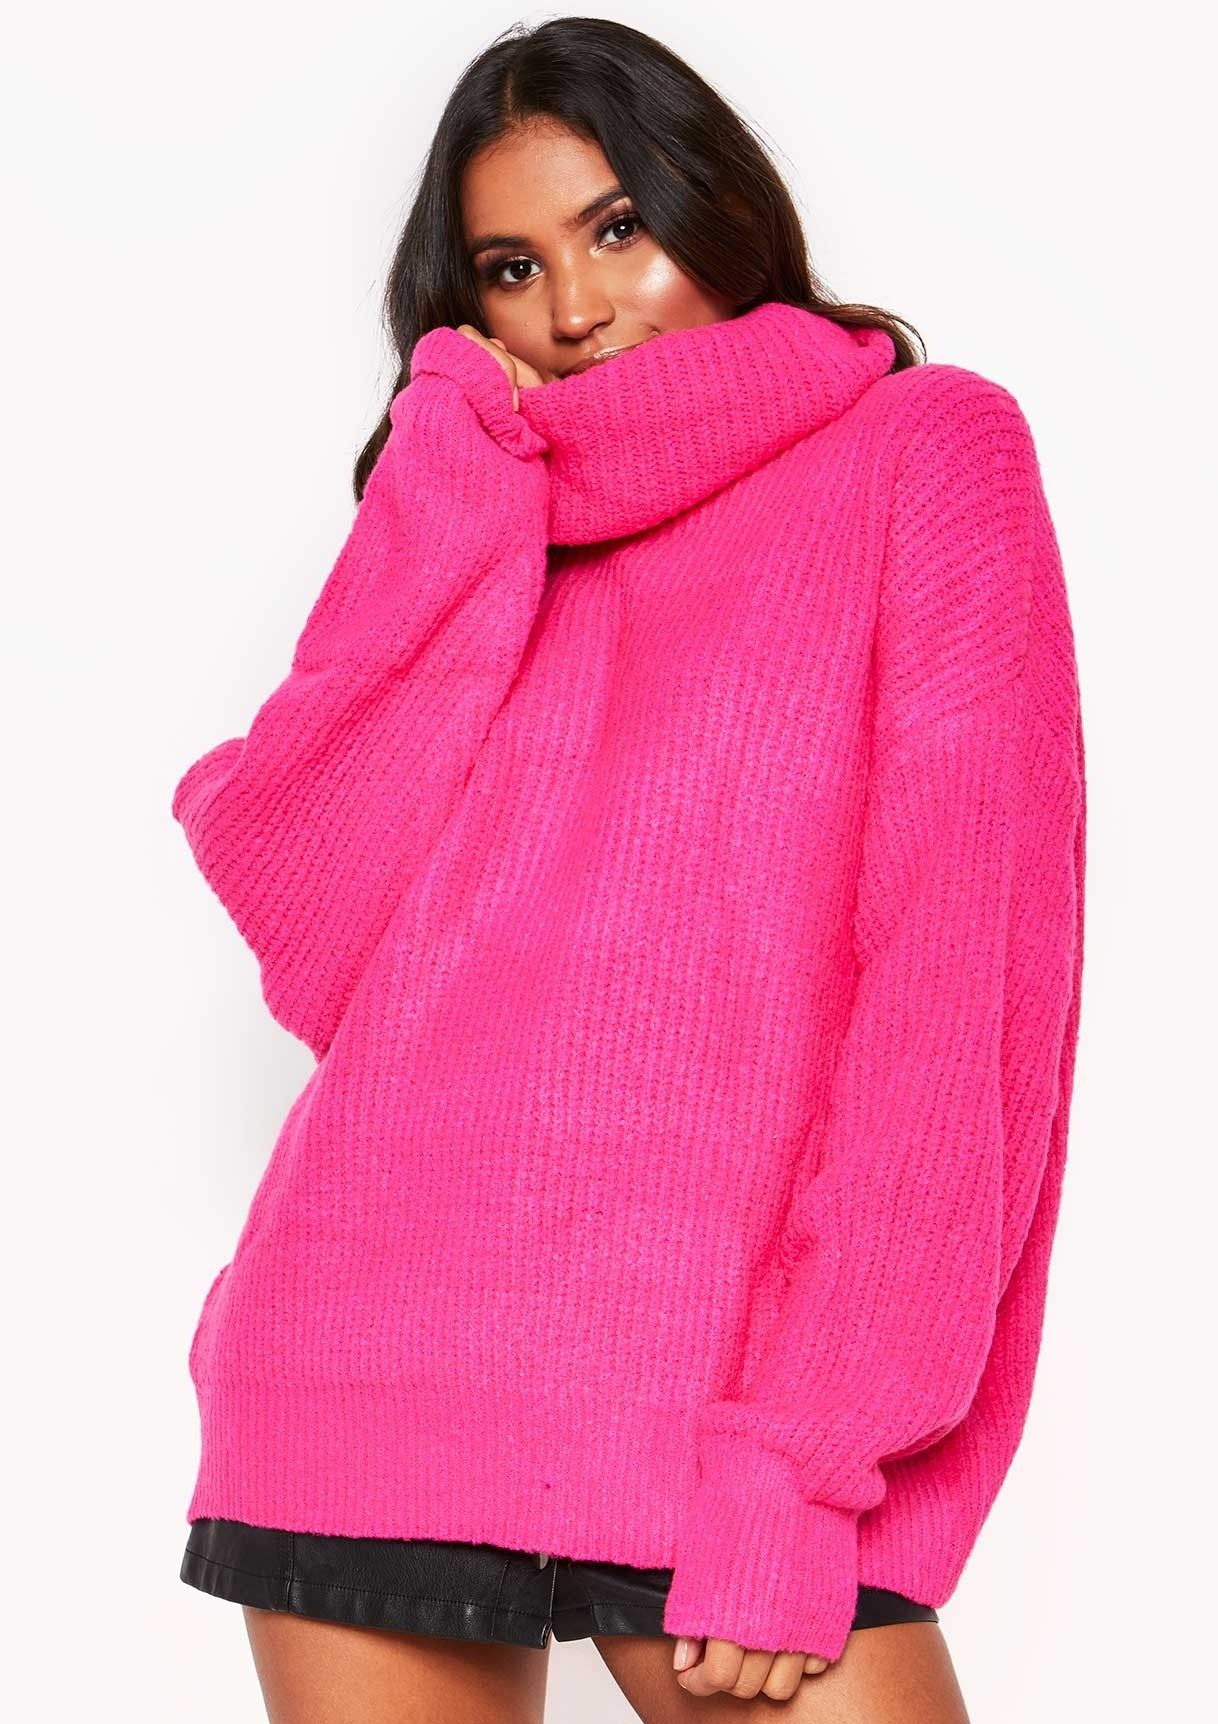 Missyempire - Neon Pink Roll Neck Oversized Knit Jumper  6c283a29a